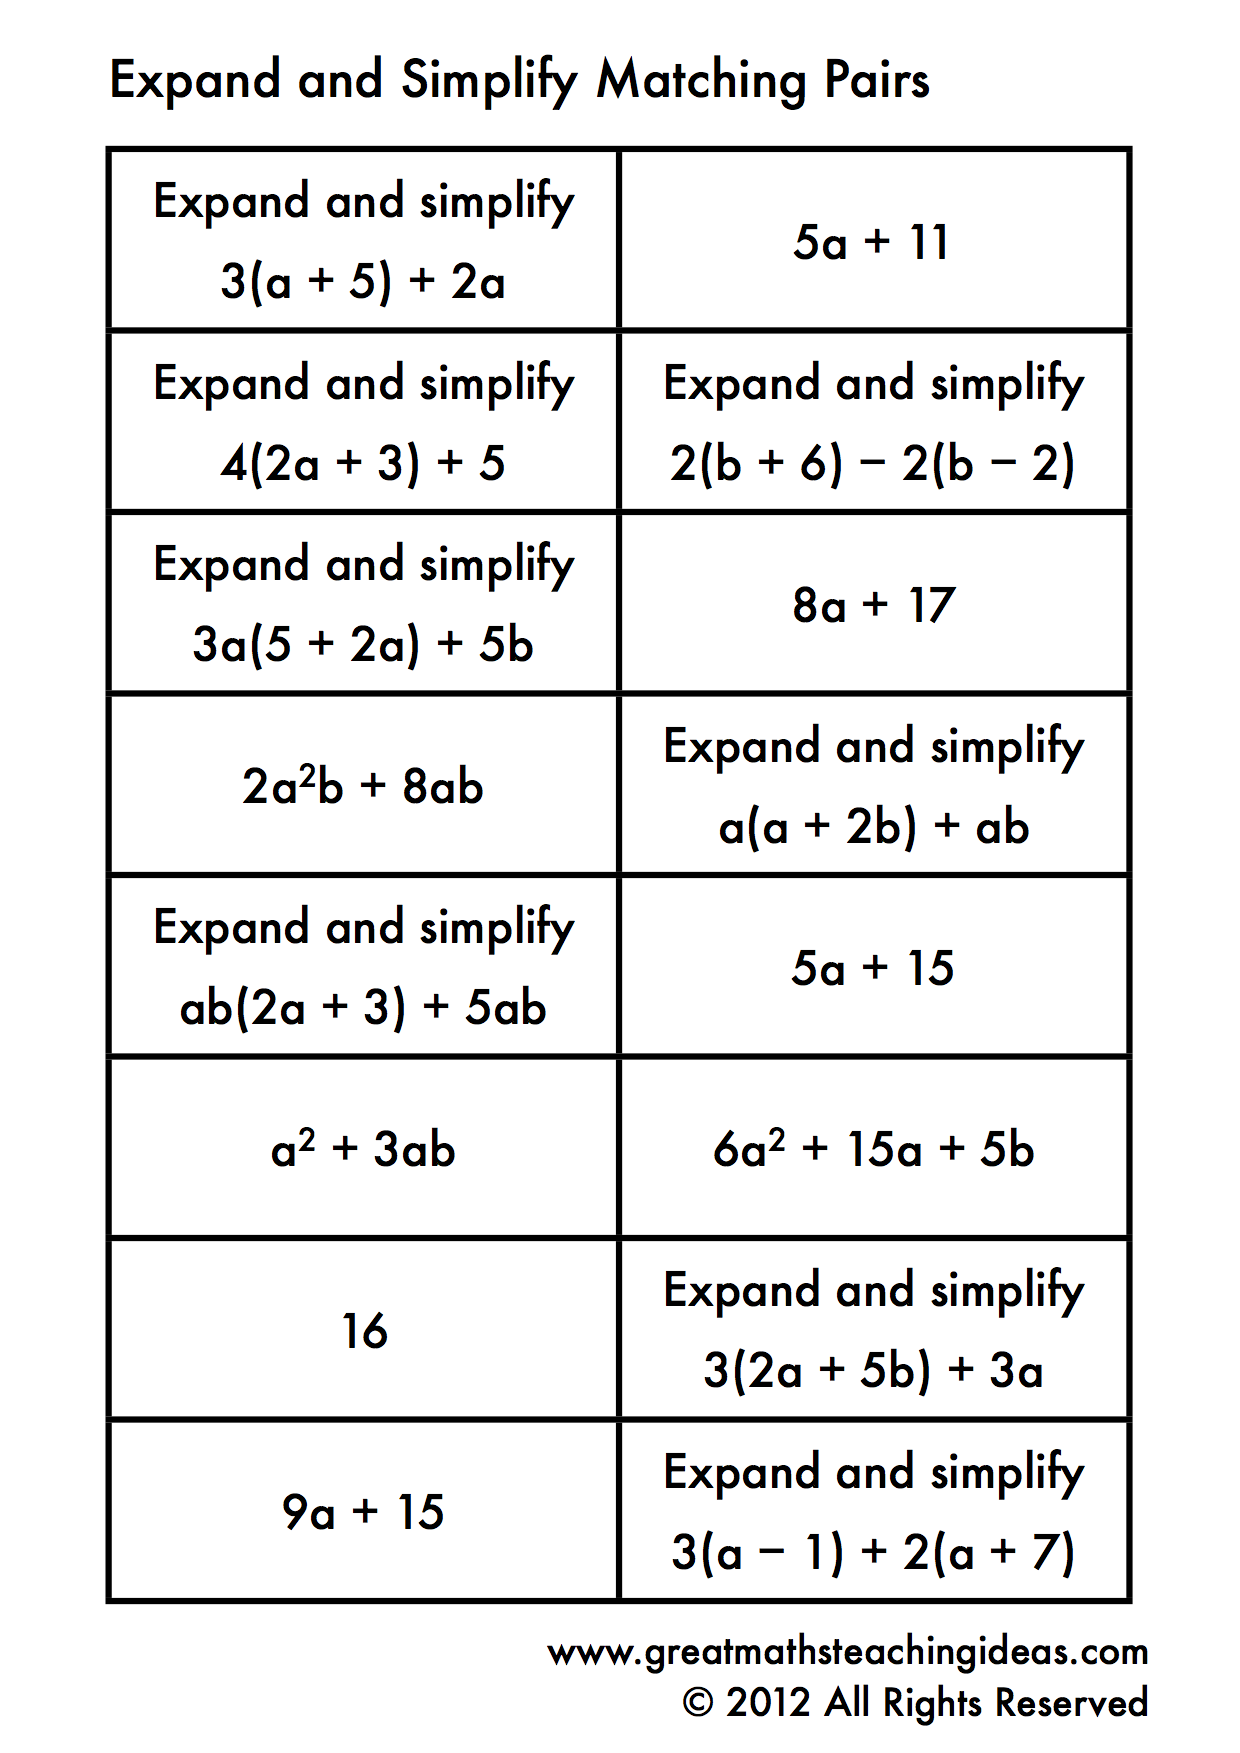 Square Expanding Table Expanding And Simplifying Single Brackets Matching Pairs